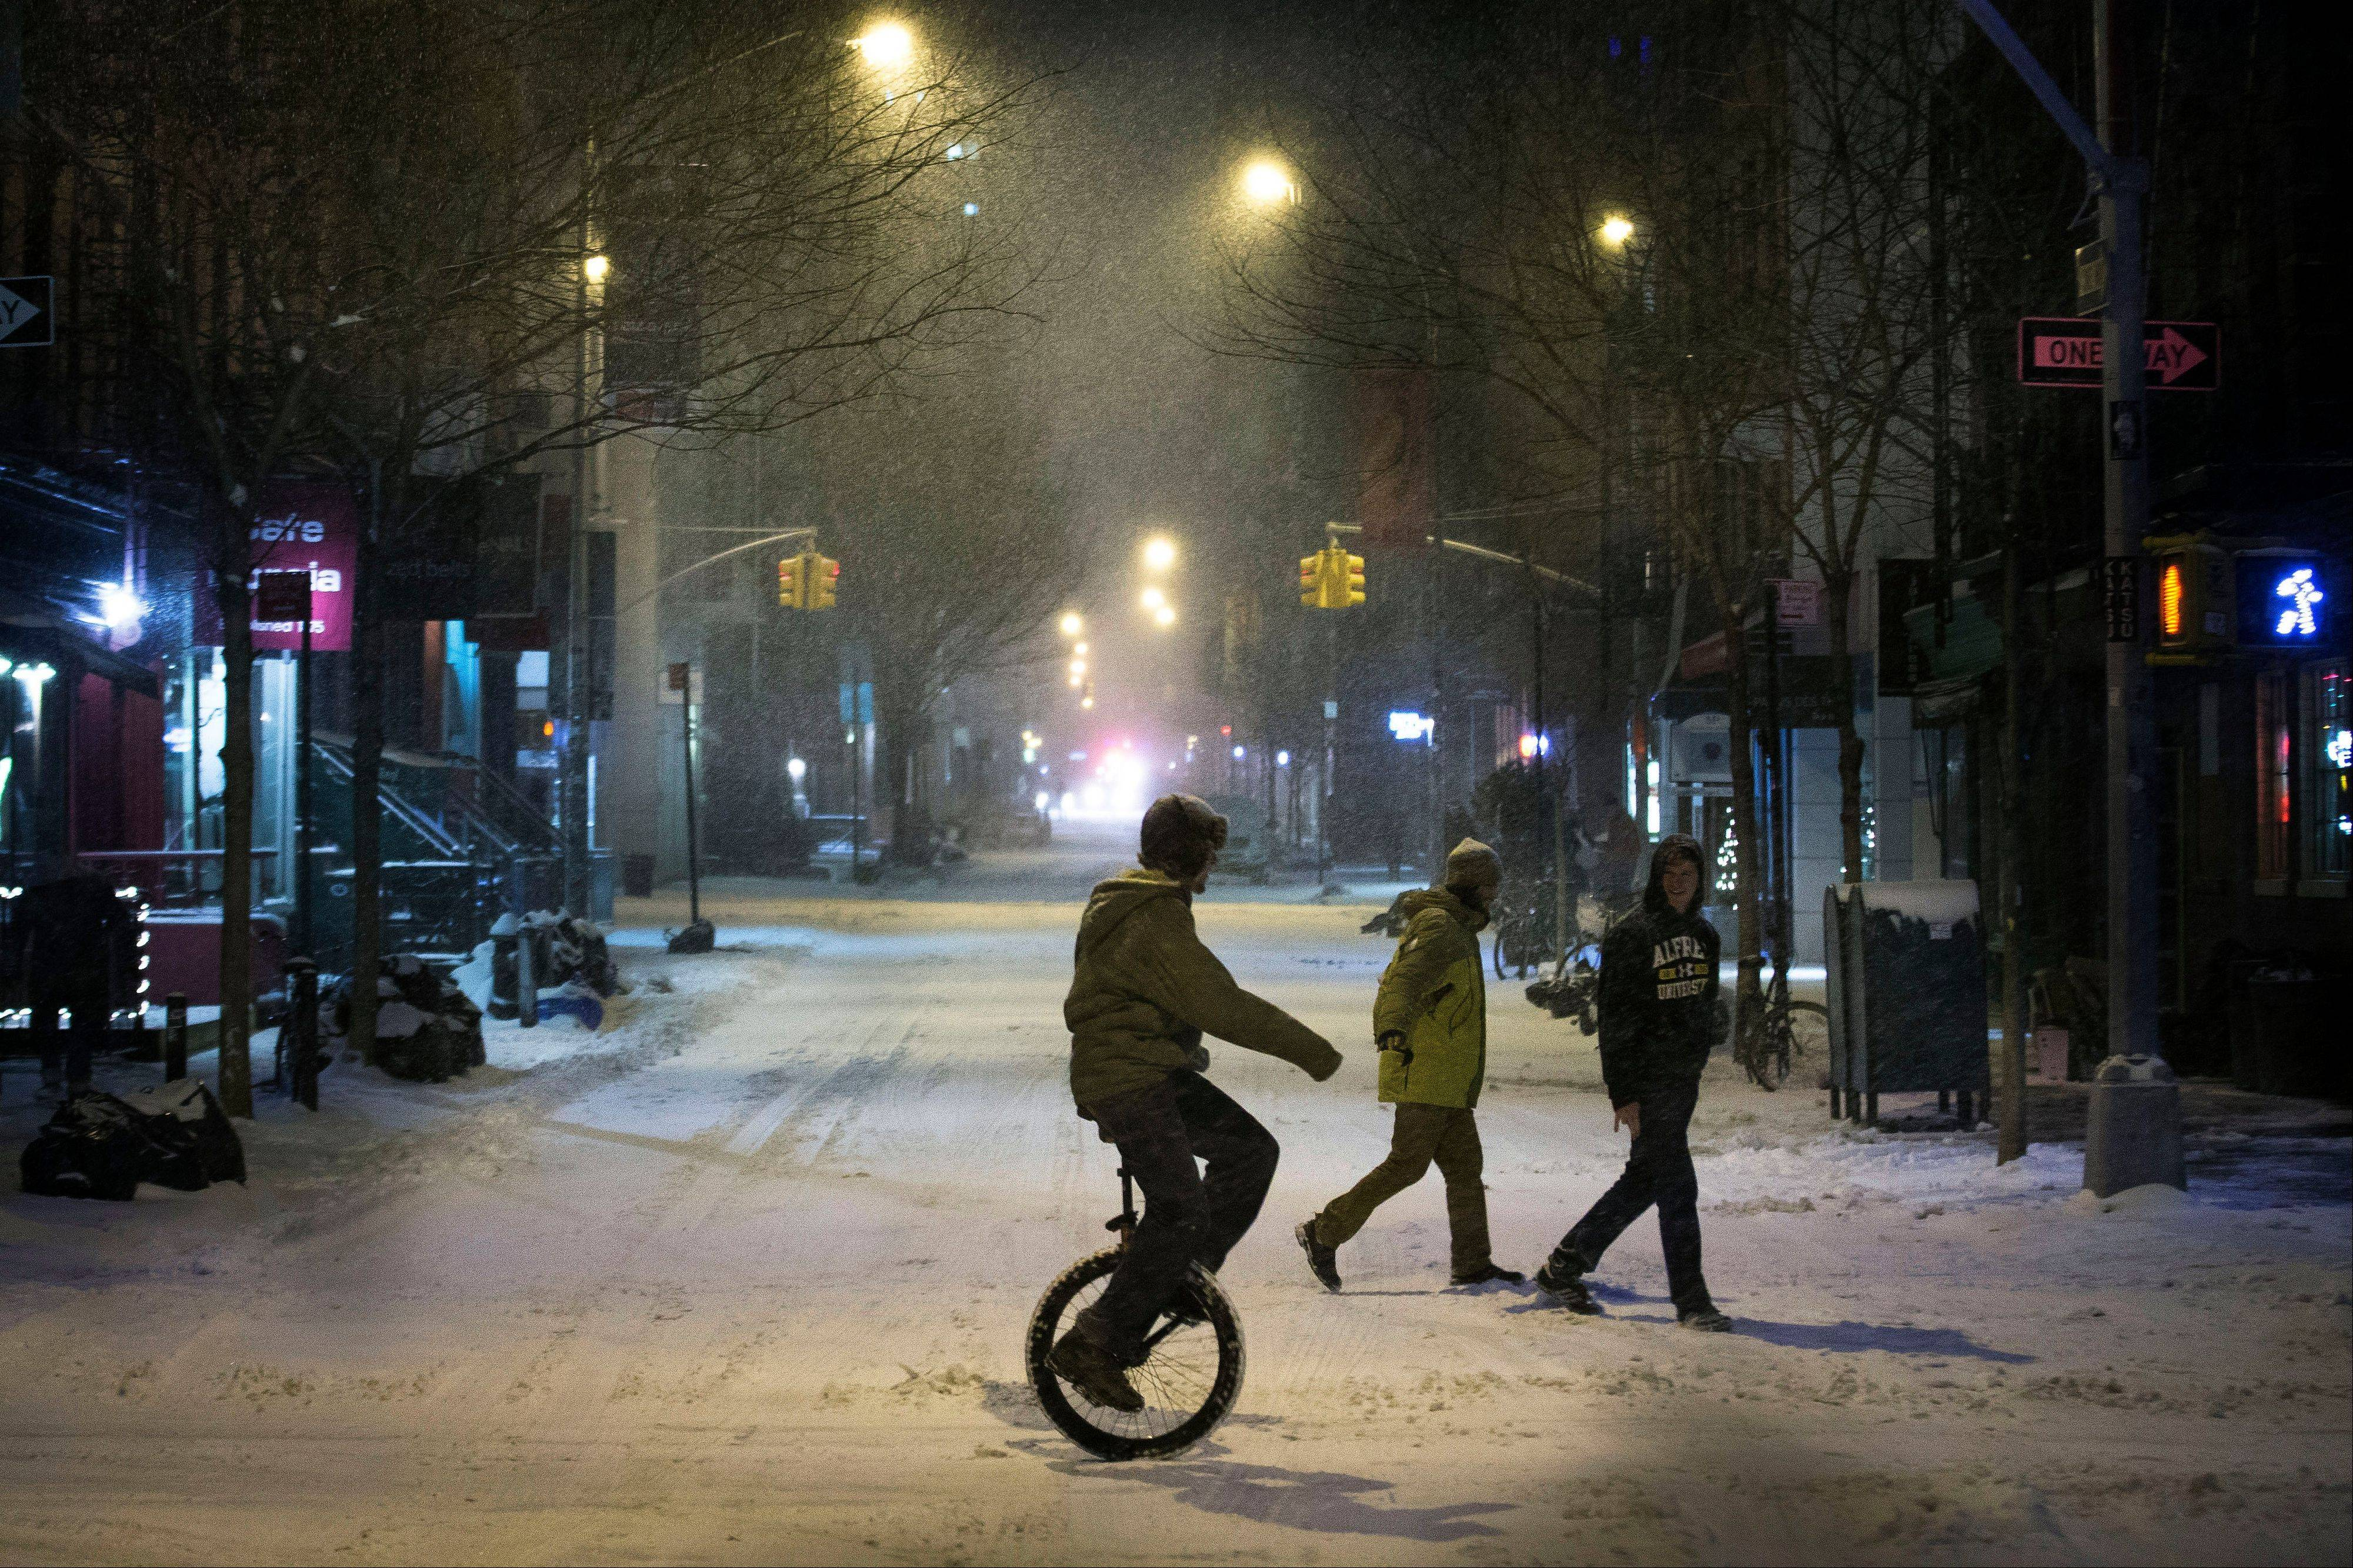 A unicyclist crosses the street during a snowstorm in the SoHo neighborhood of Manhattan, Thursday, Jan. 2, 2014, in New York. The storm is expected to bring snow, stiff winds and punishing cold into the Northeast.